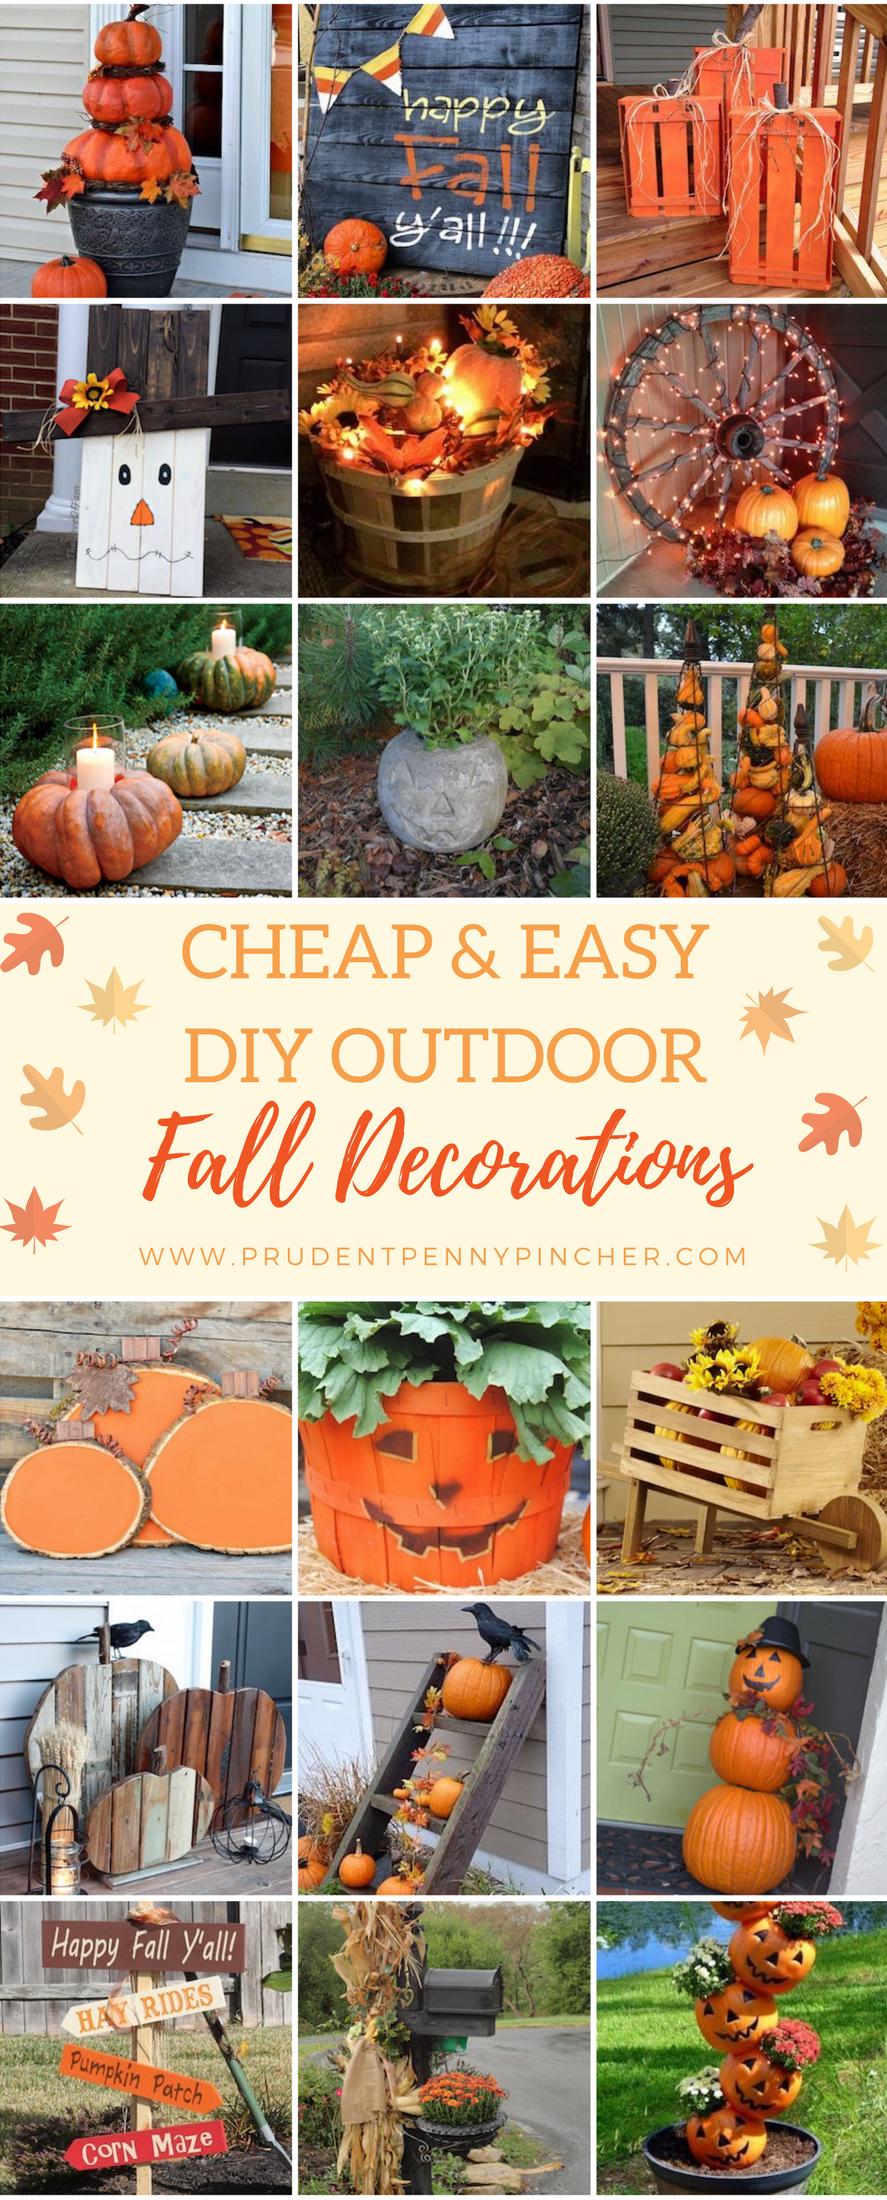 50 Cheap and Easy DIY Outdoor Fall Decorations - Prudent ...